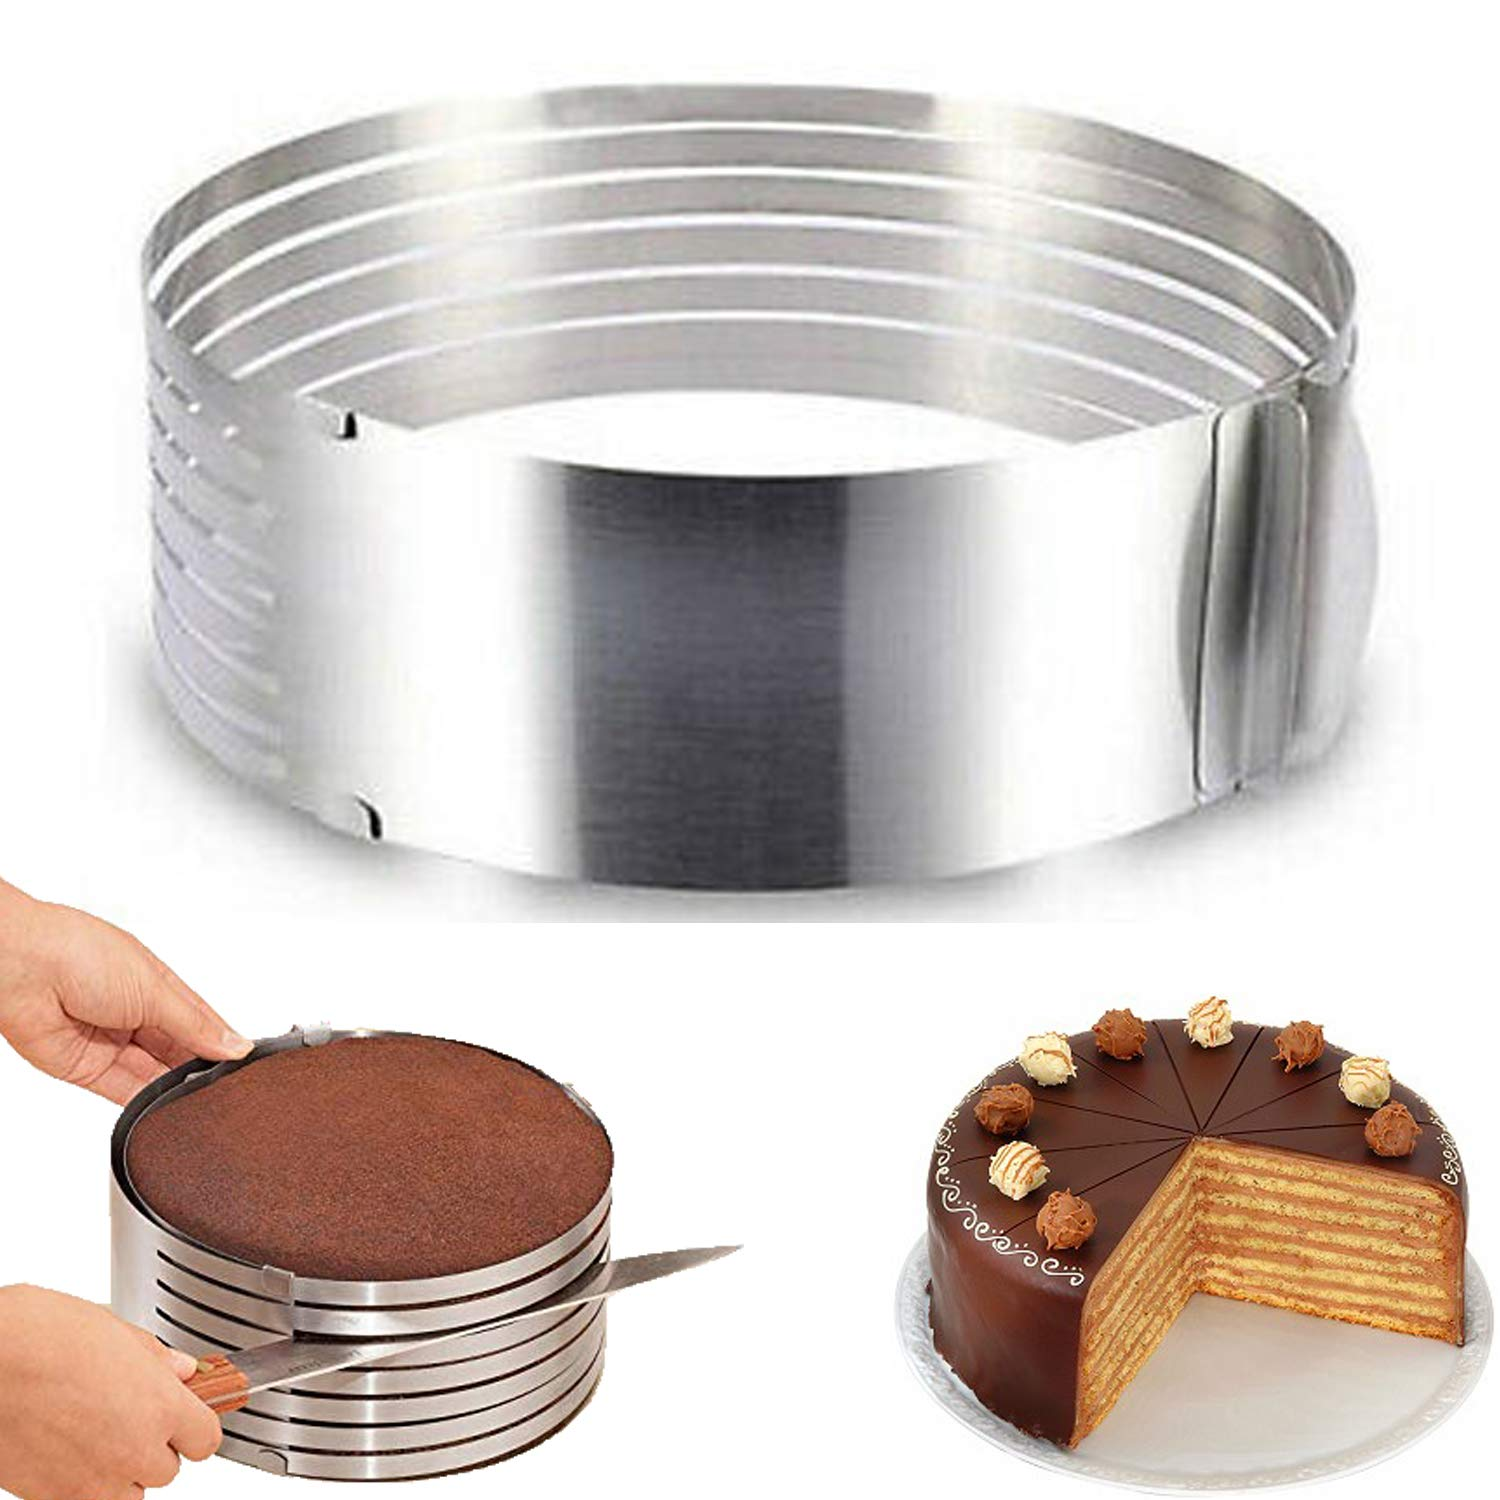 RAINBEAN Adjustable Layered Cake Slicer leveler,6-8 Inch Stainless Steel Round Bread Layer Cake Cutter Mold,Baking Tool Kit Set Mousse Mould Slicing-Silver